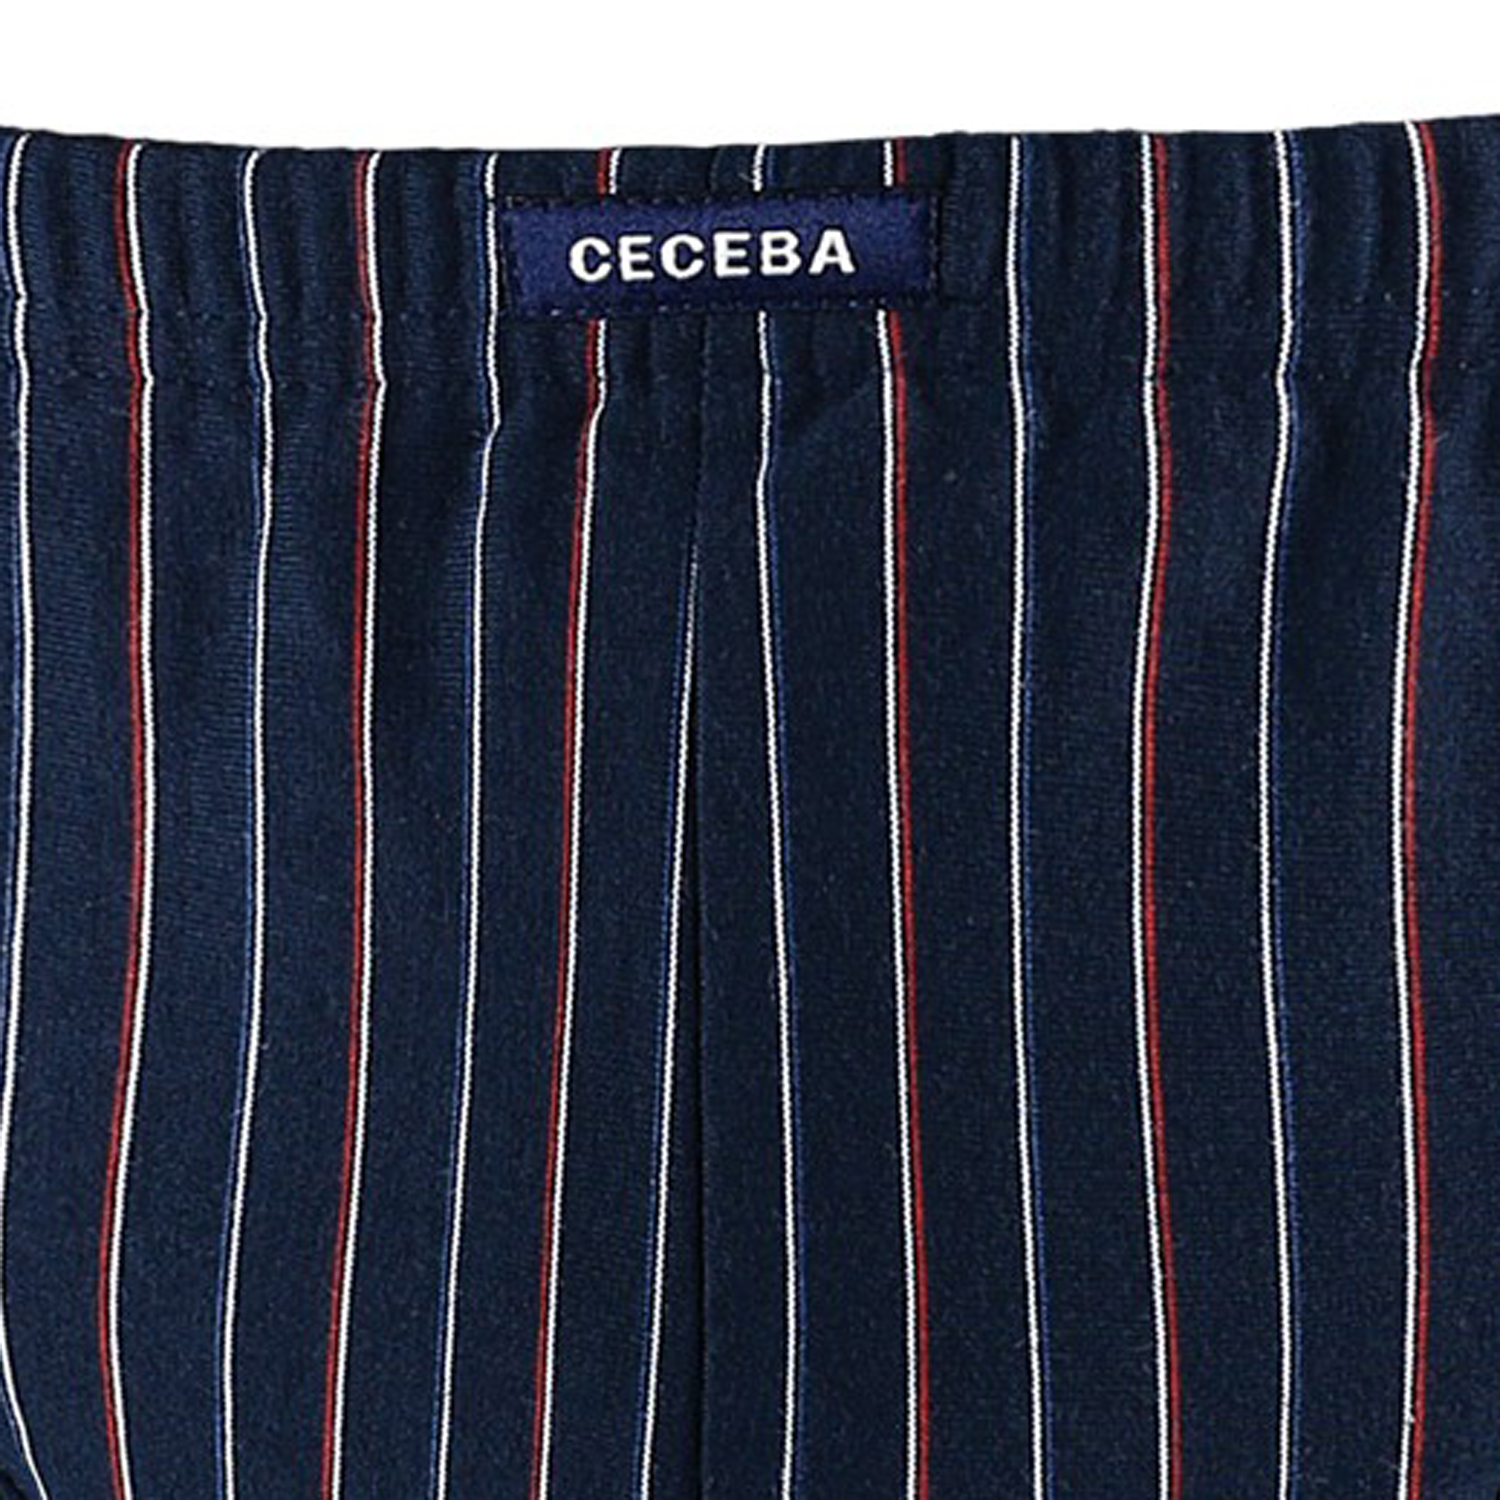 Detail Image to Briefs in navy and navy-red striped by Ceceba up to oversize 18 / pack of 3